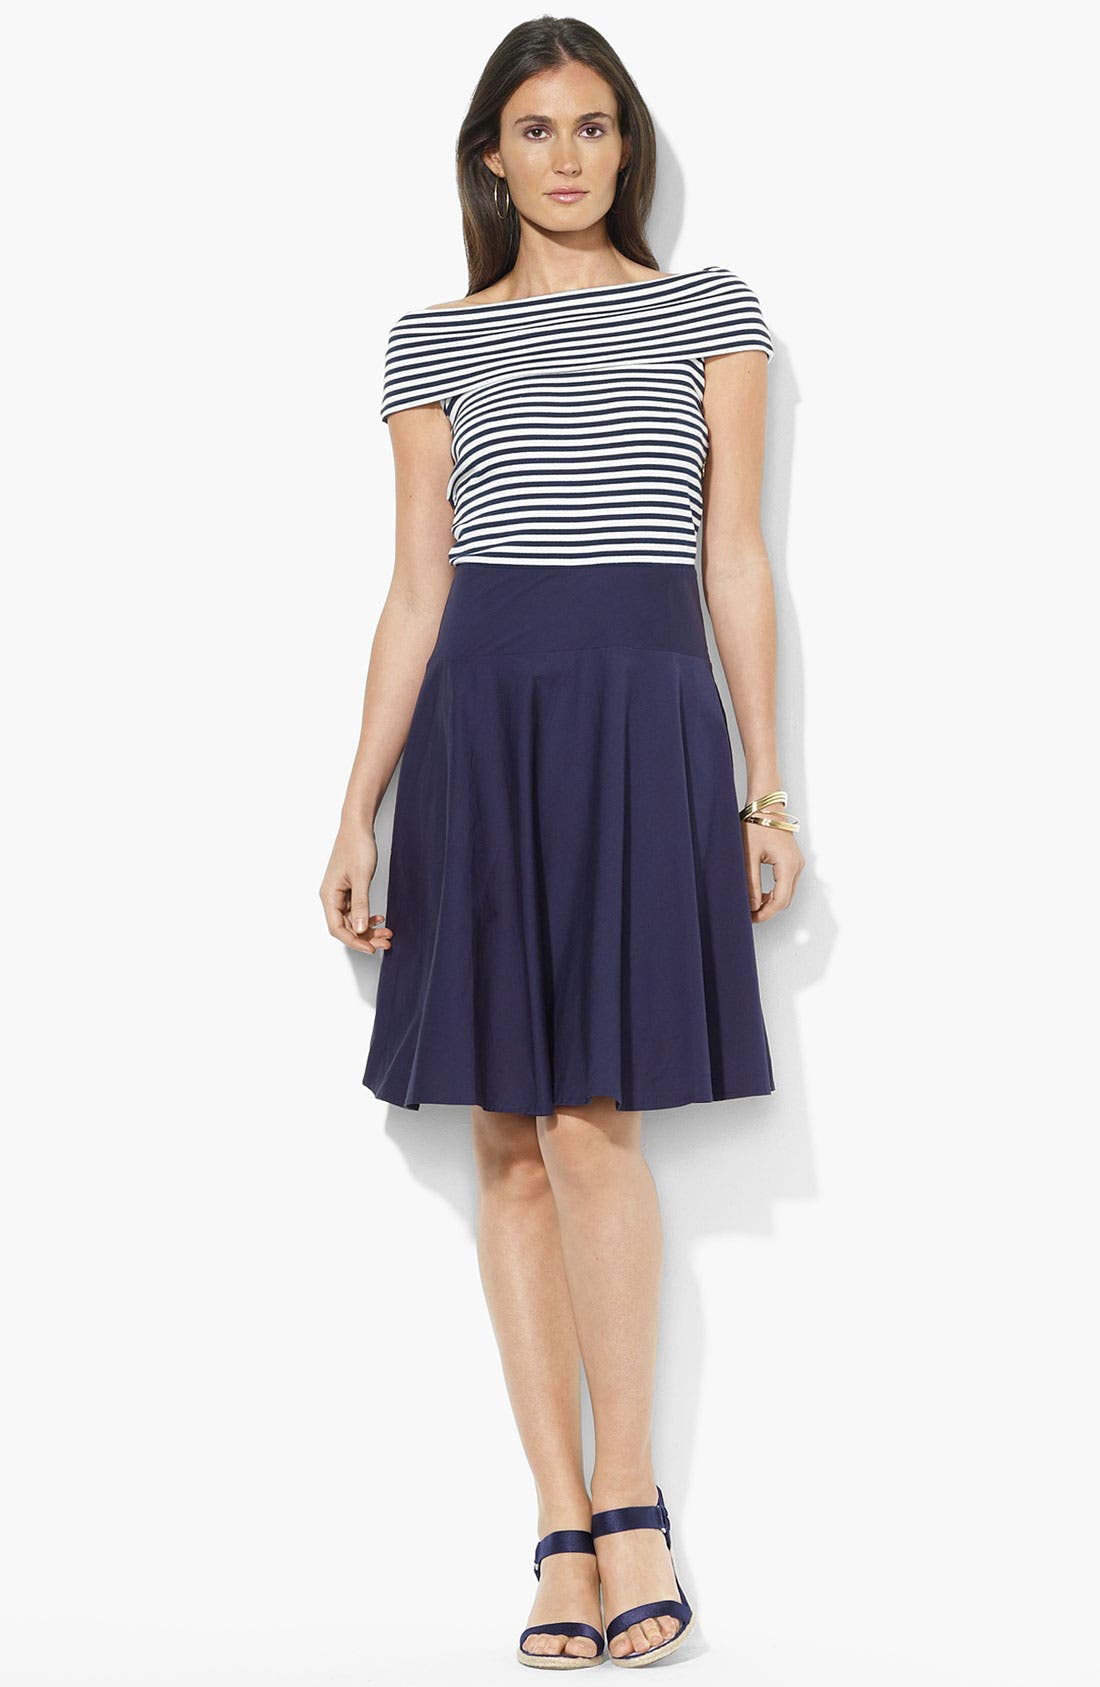 Alternate Image 1 Selected - Lauren Ralph Lauren Bateau Neck Woven Skirt Dress (Petite)